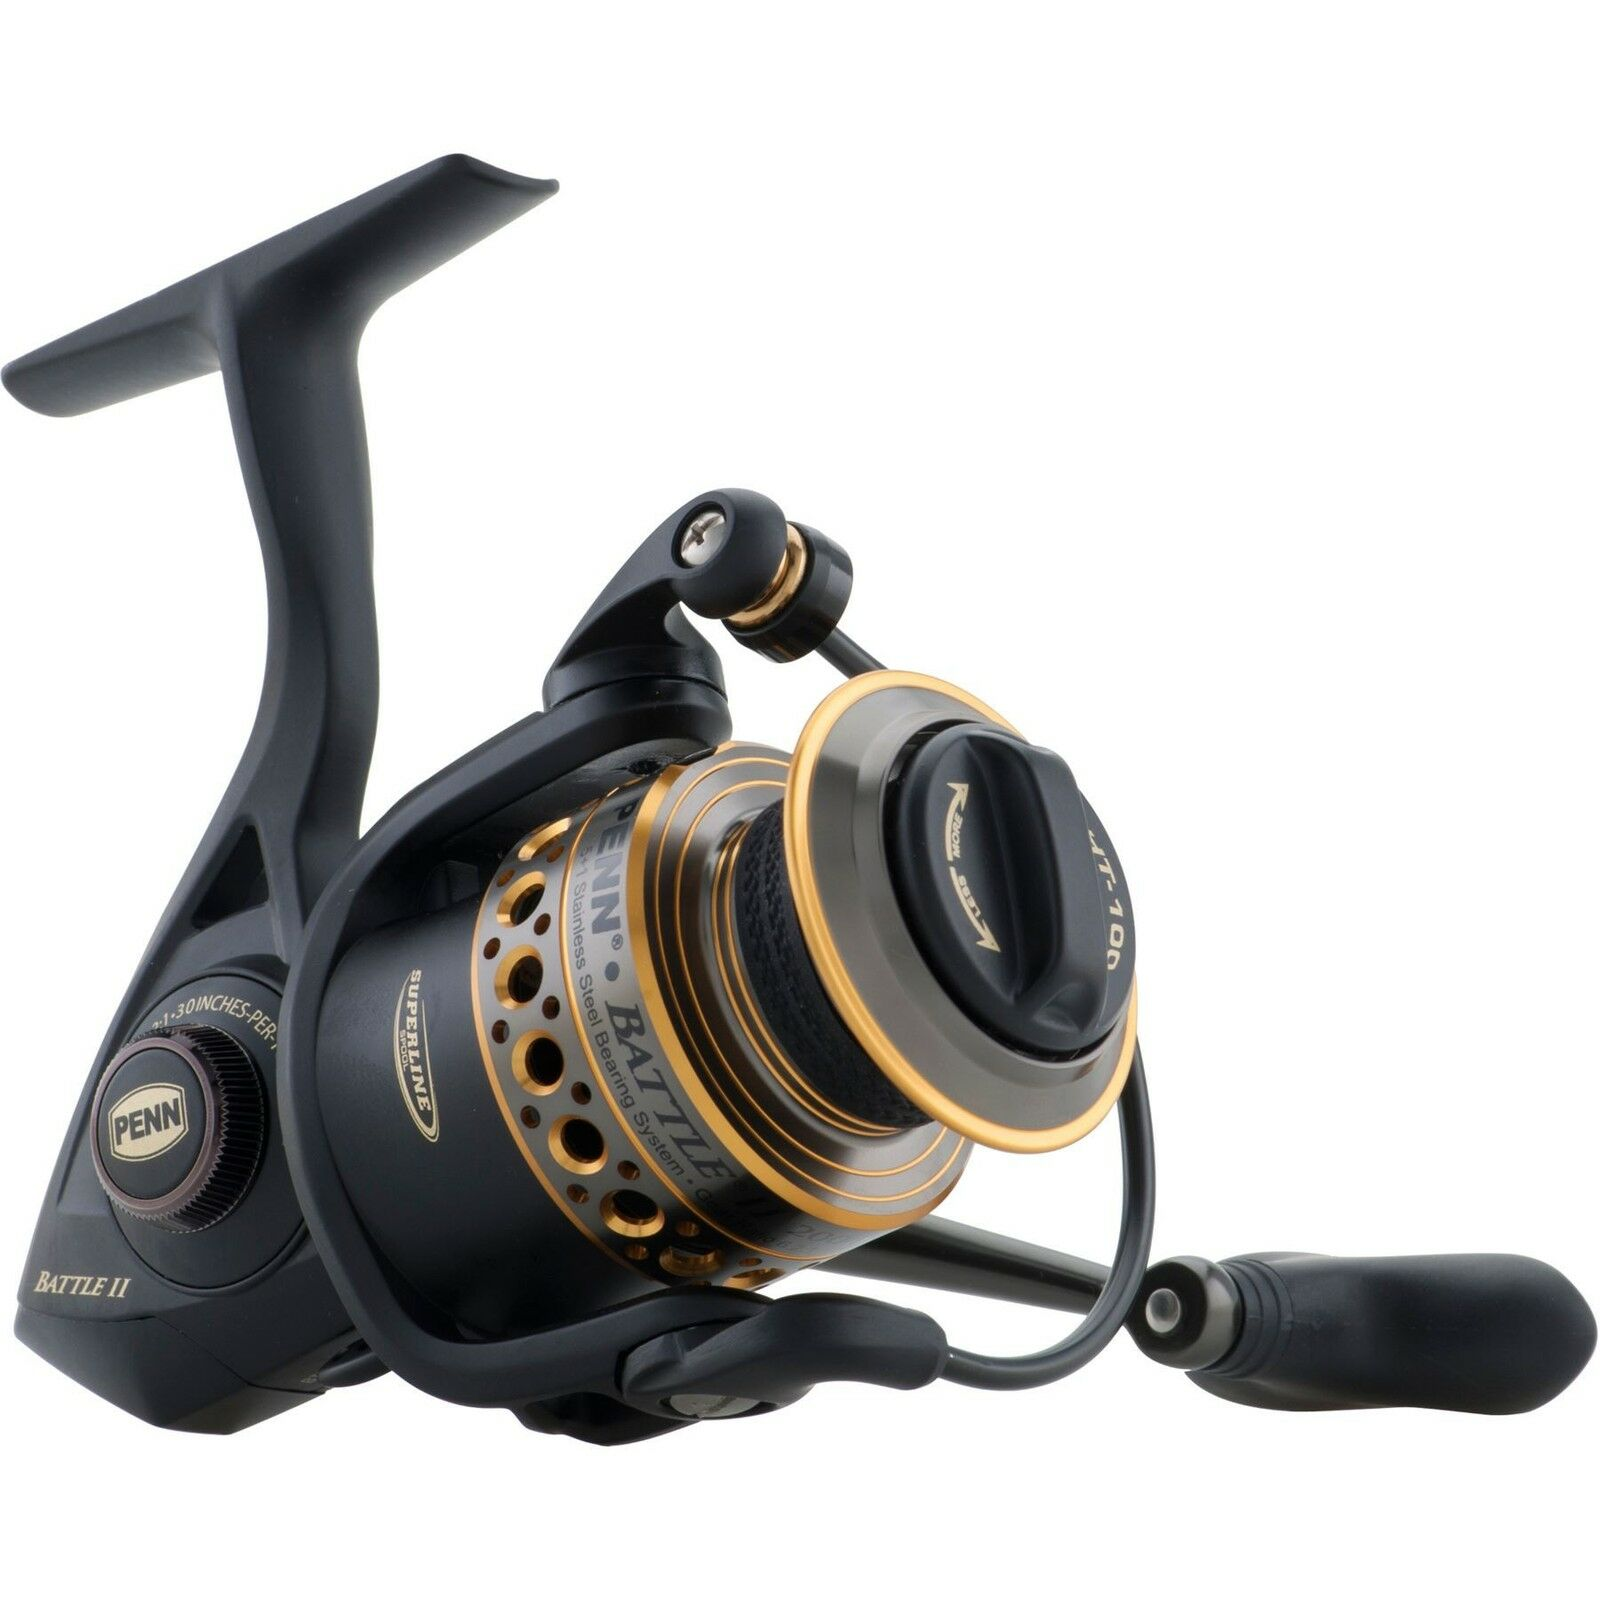 Penn  Battle II 2000   Fishing Reels  save 60% discount and fast shipping worldwide